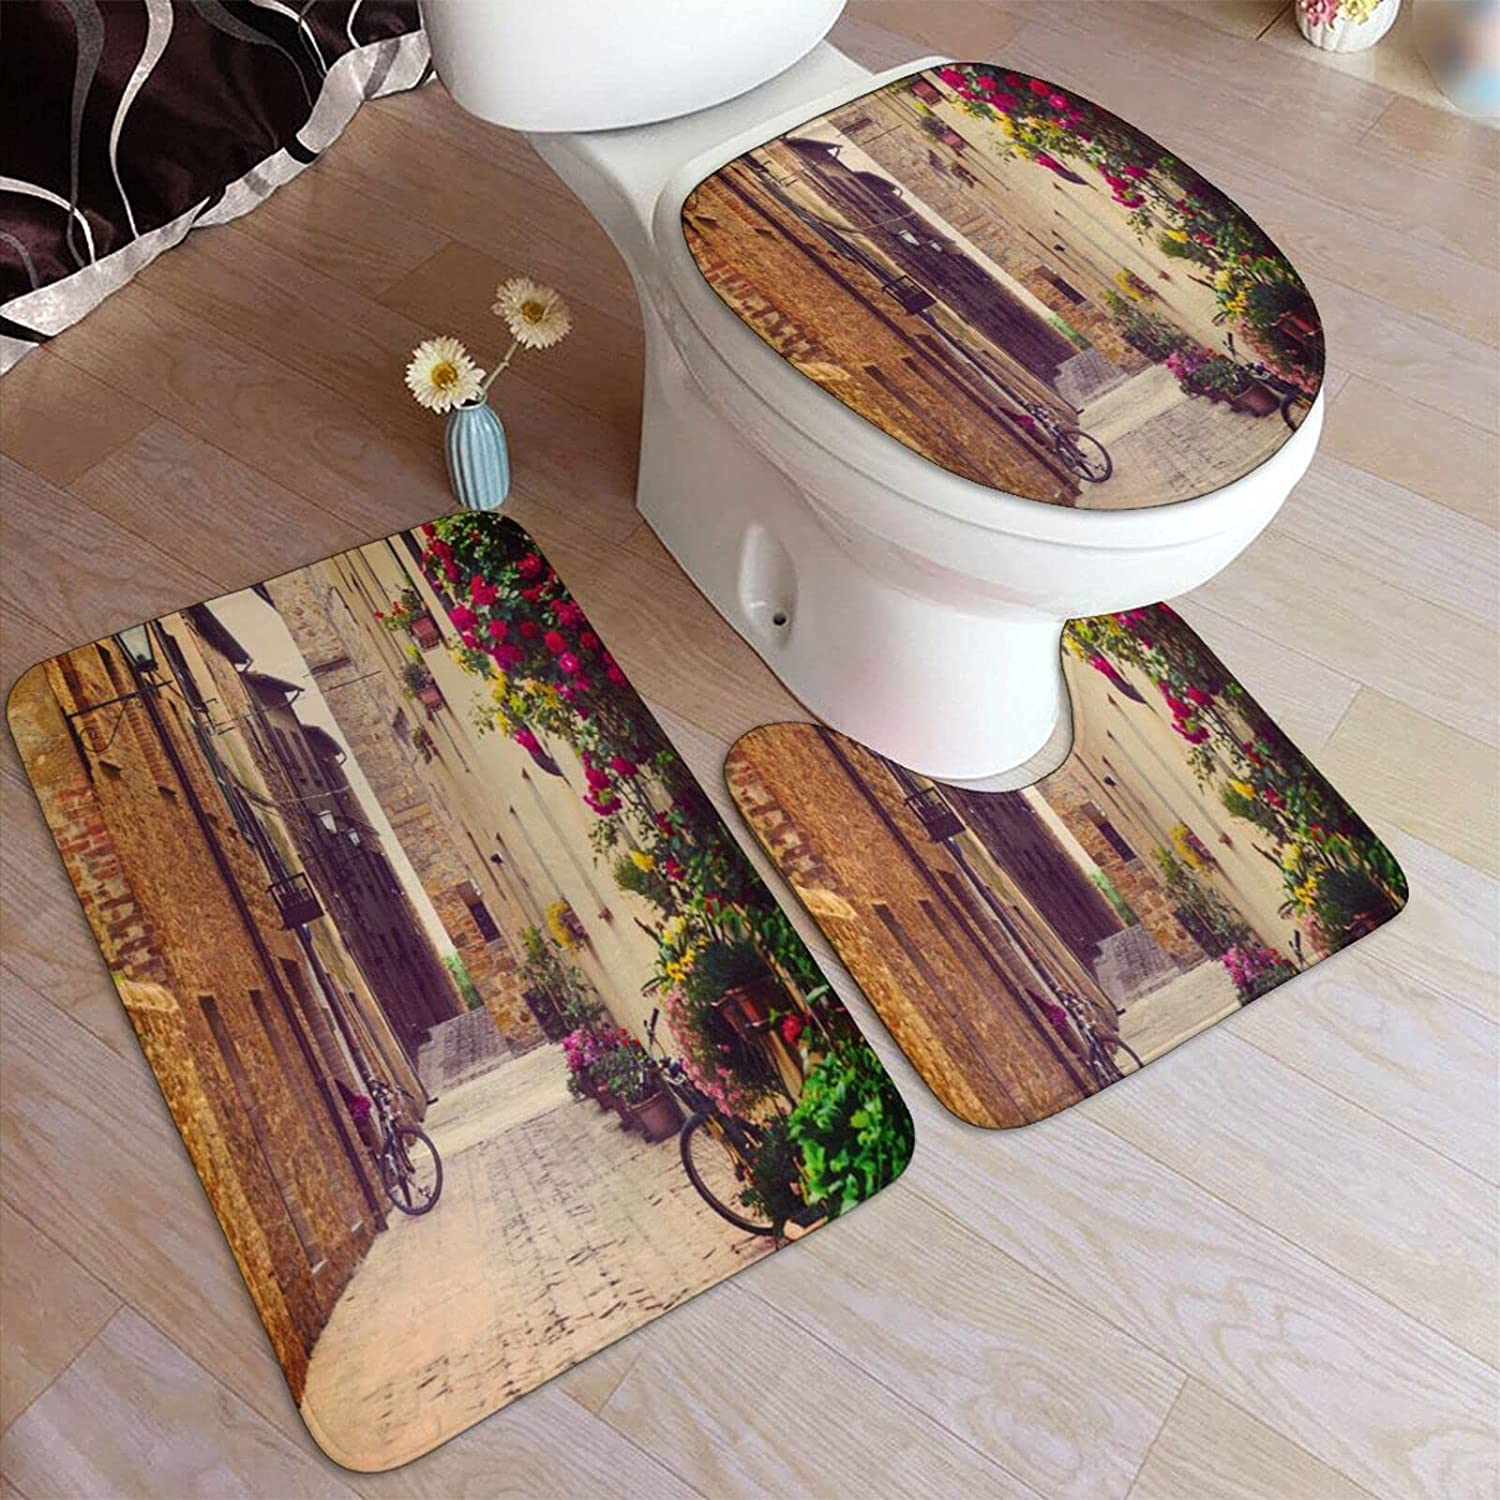 COVASA 3 Free Shipping New Pieces Bath Mats Set Credence Street in Tusc for Pienza Bathroom